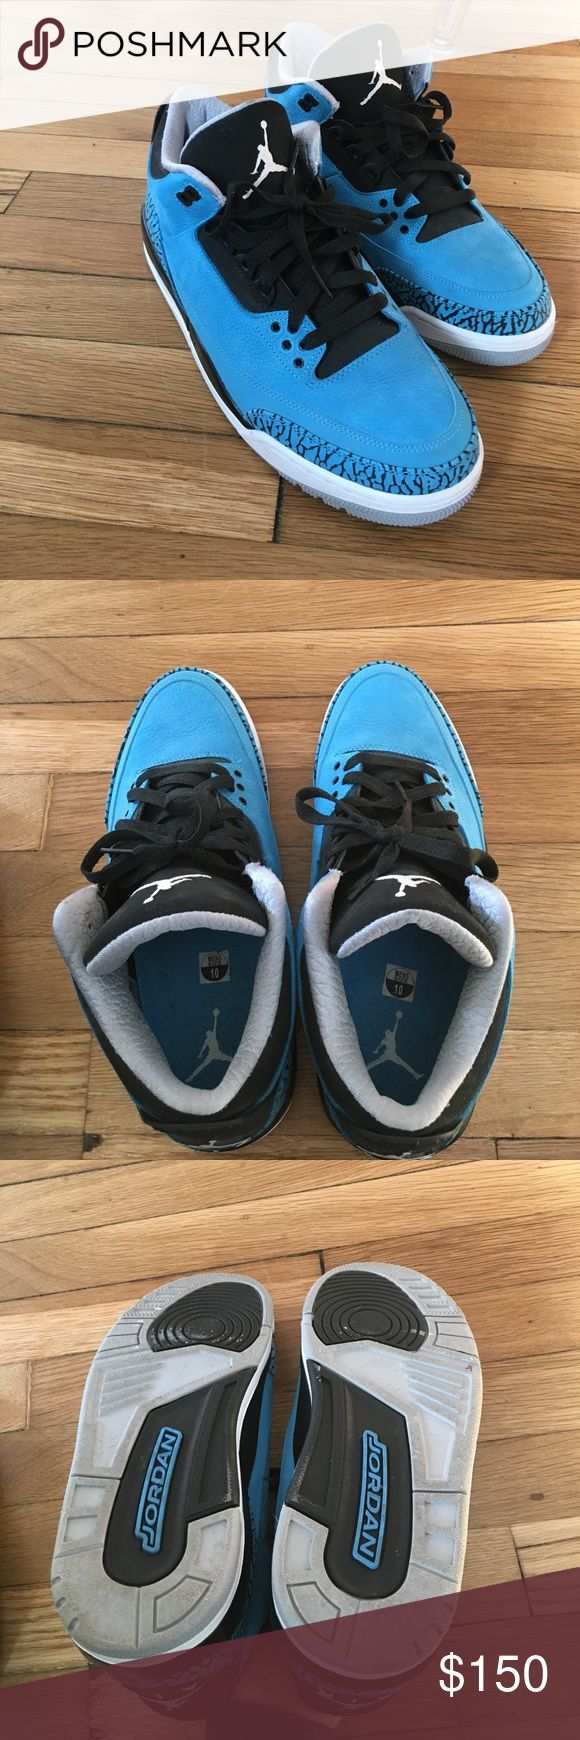 Air retro 3 powder blue Jordan shoes Air retro 3 powder blue in mint condition no original box for this pair of shoes Jordan Shoes Sneakers